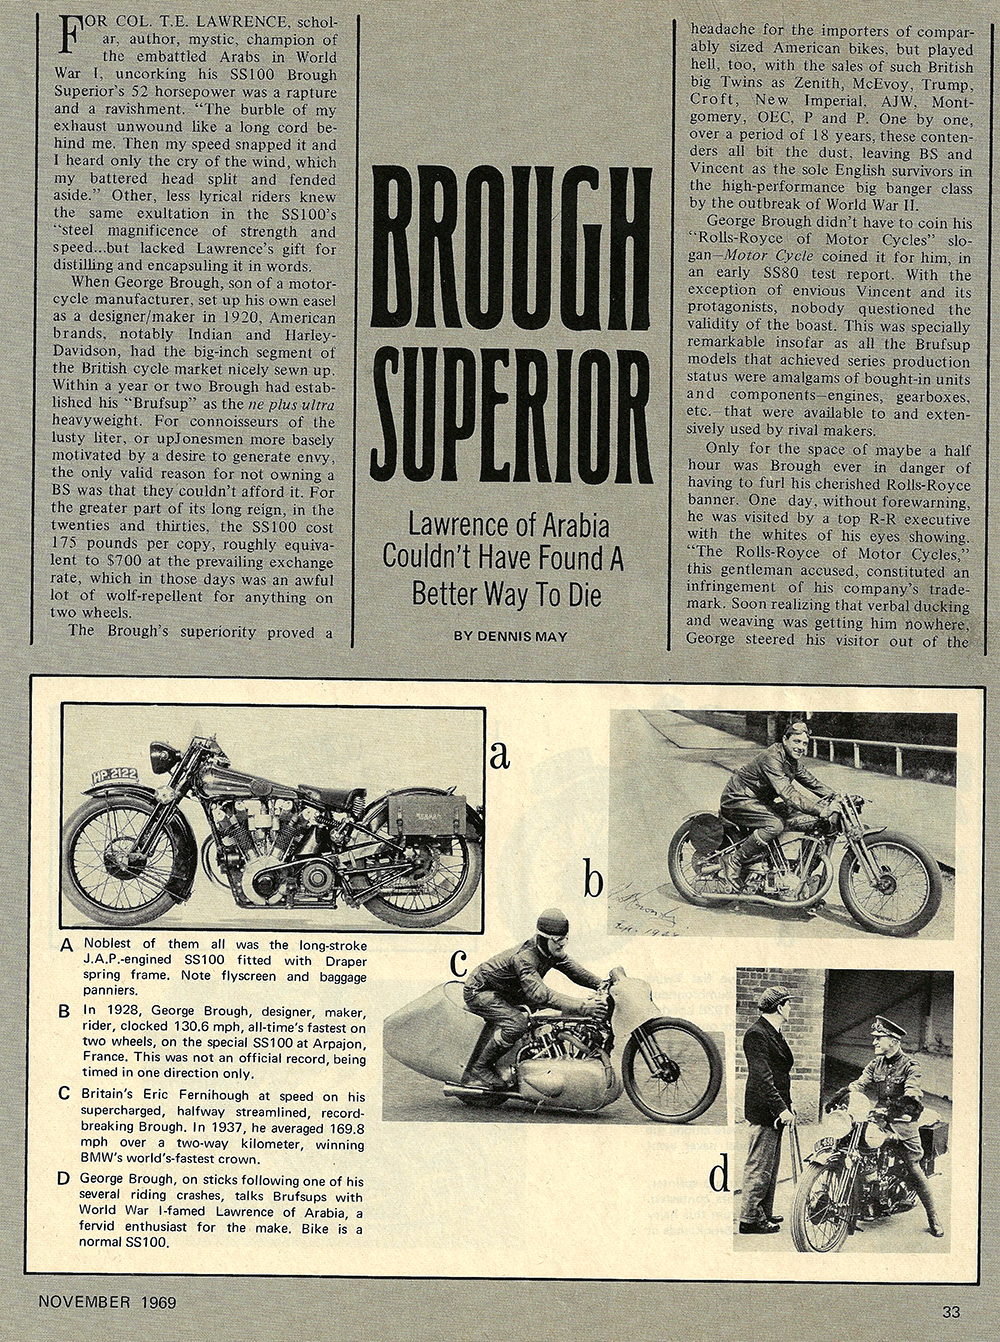 History of Brough Superior 01.jpg